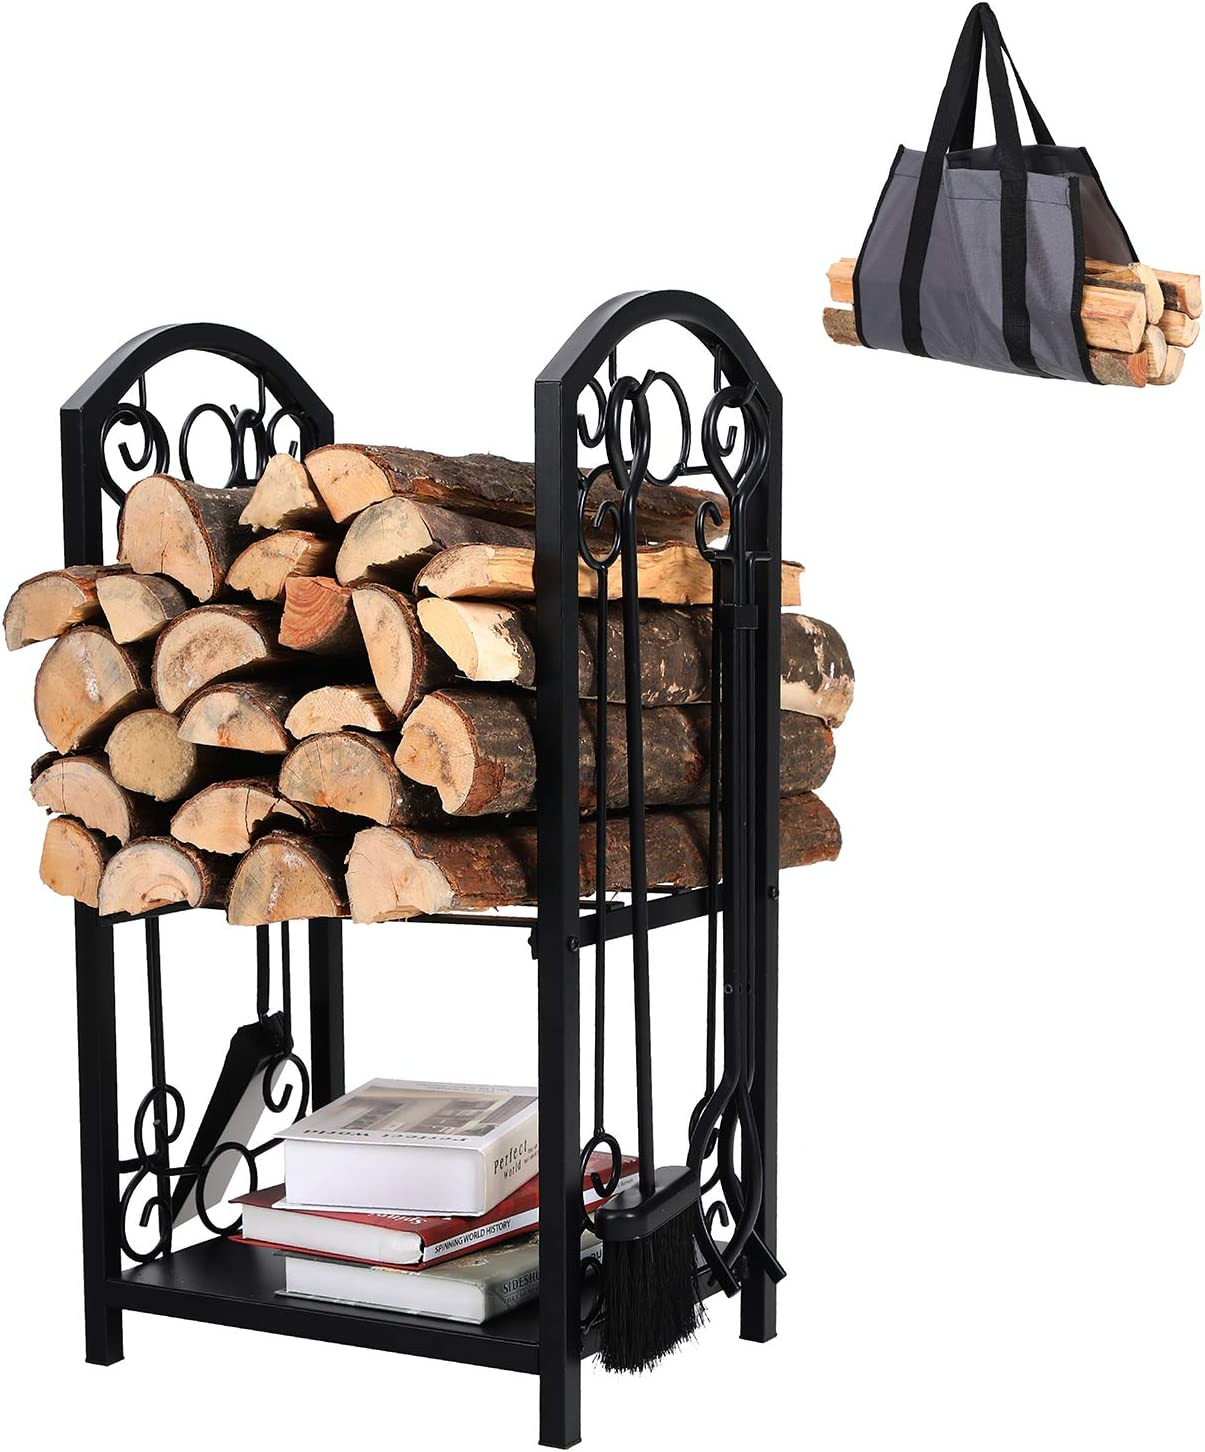 PHI VILLA All-in-One Heavy Duty Hearth Indoor Outdoor Firewood Rack with Fireplace Tools Set, 28 Inch Tall Log Holder, Black